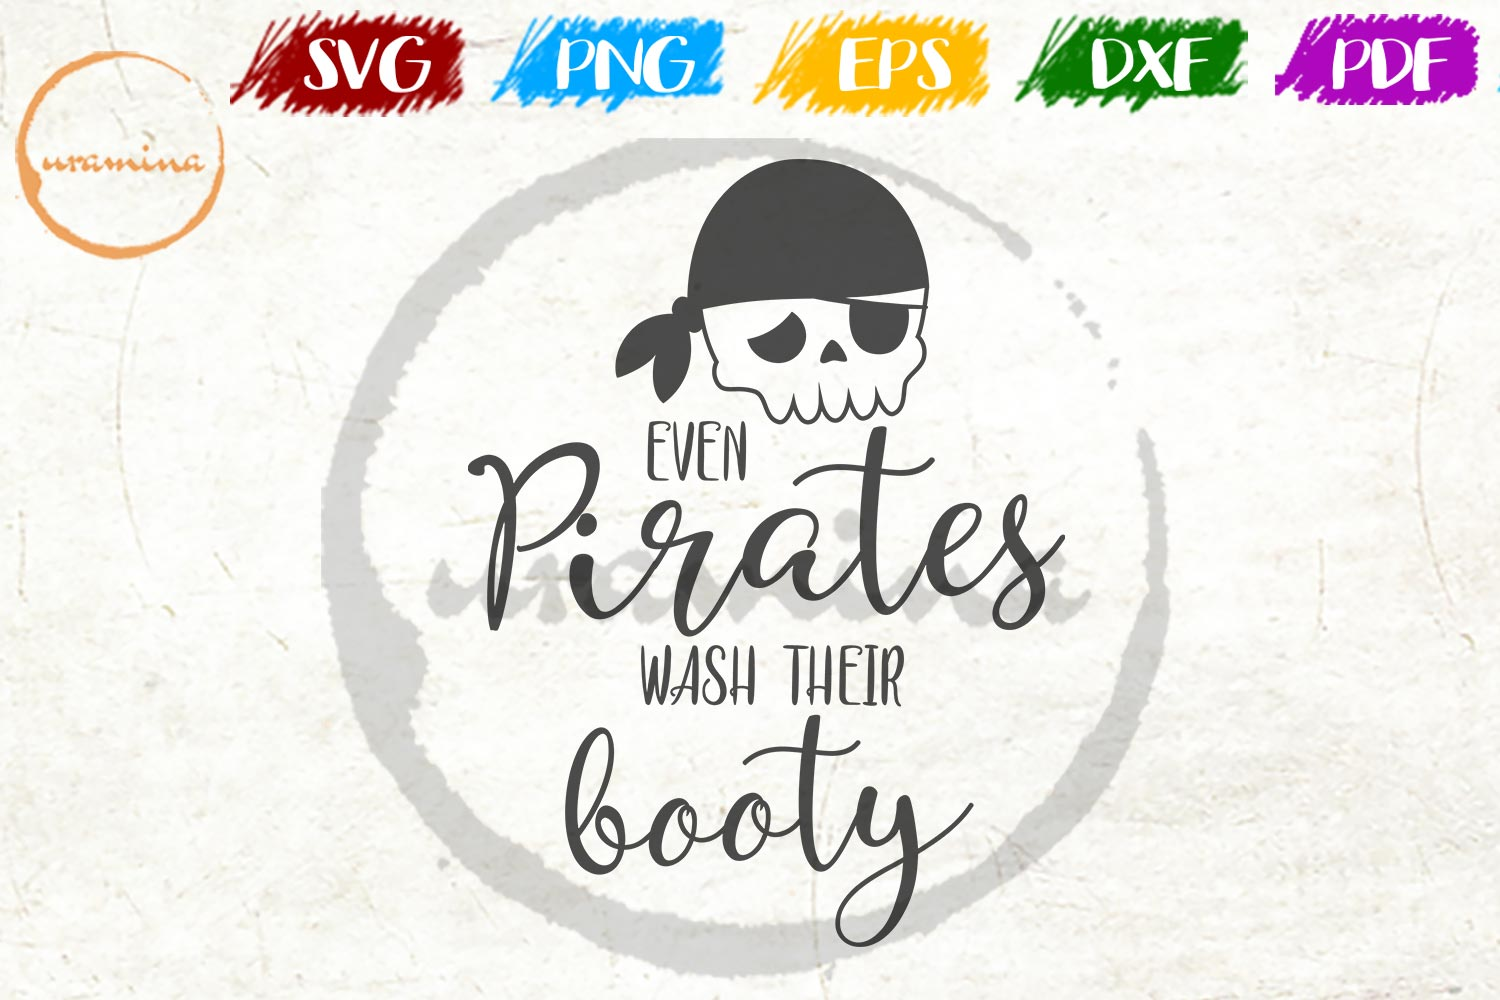 Download Free Even Pirates Wash Their Booty Graphic By Uramina Creative Fabrica for Cricut Explore, Silhouette and other cutting machines.